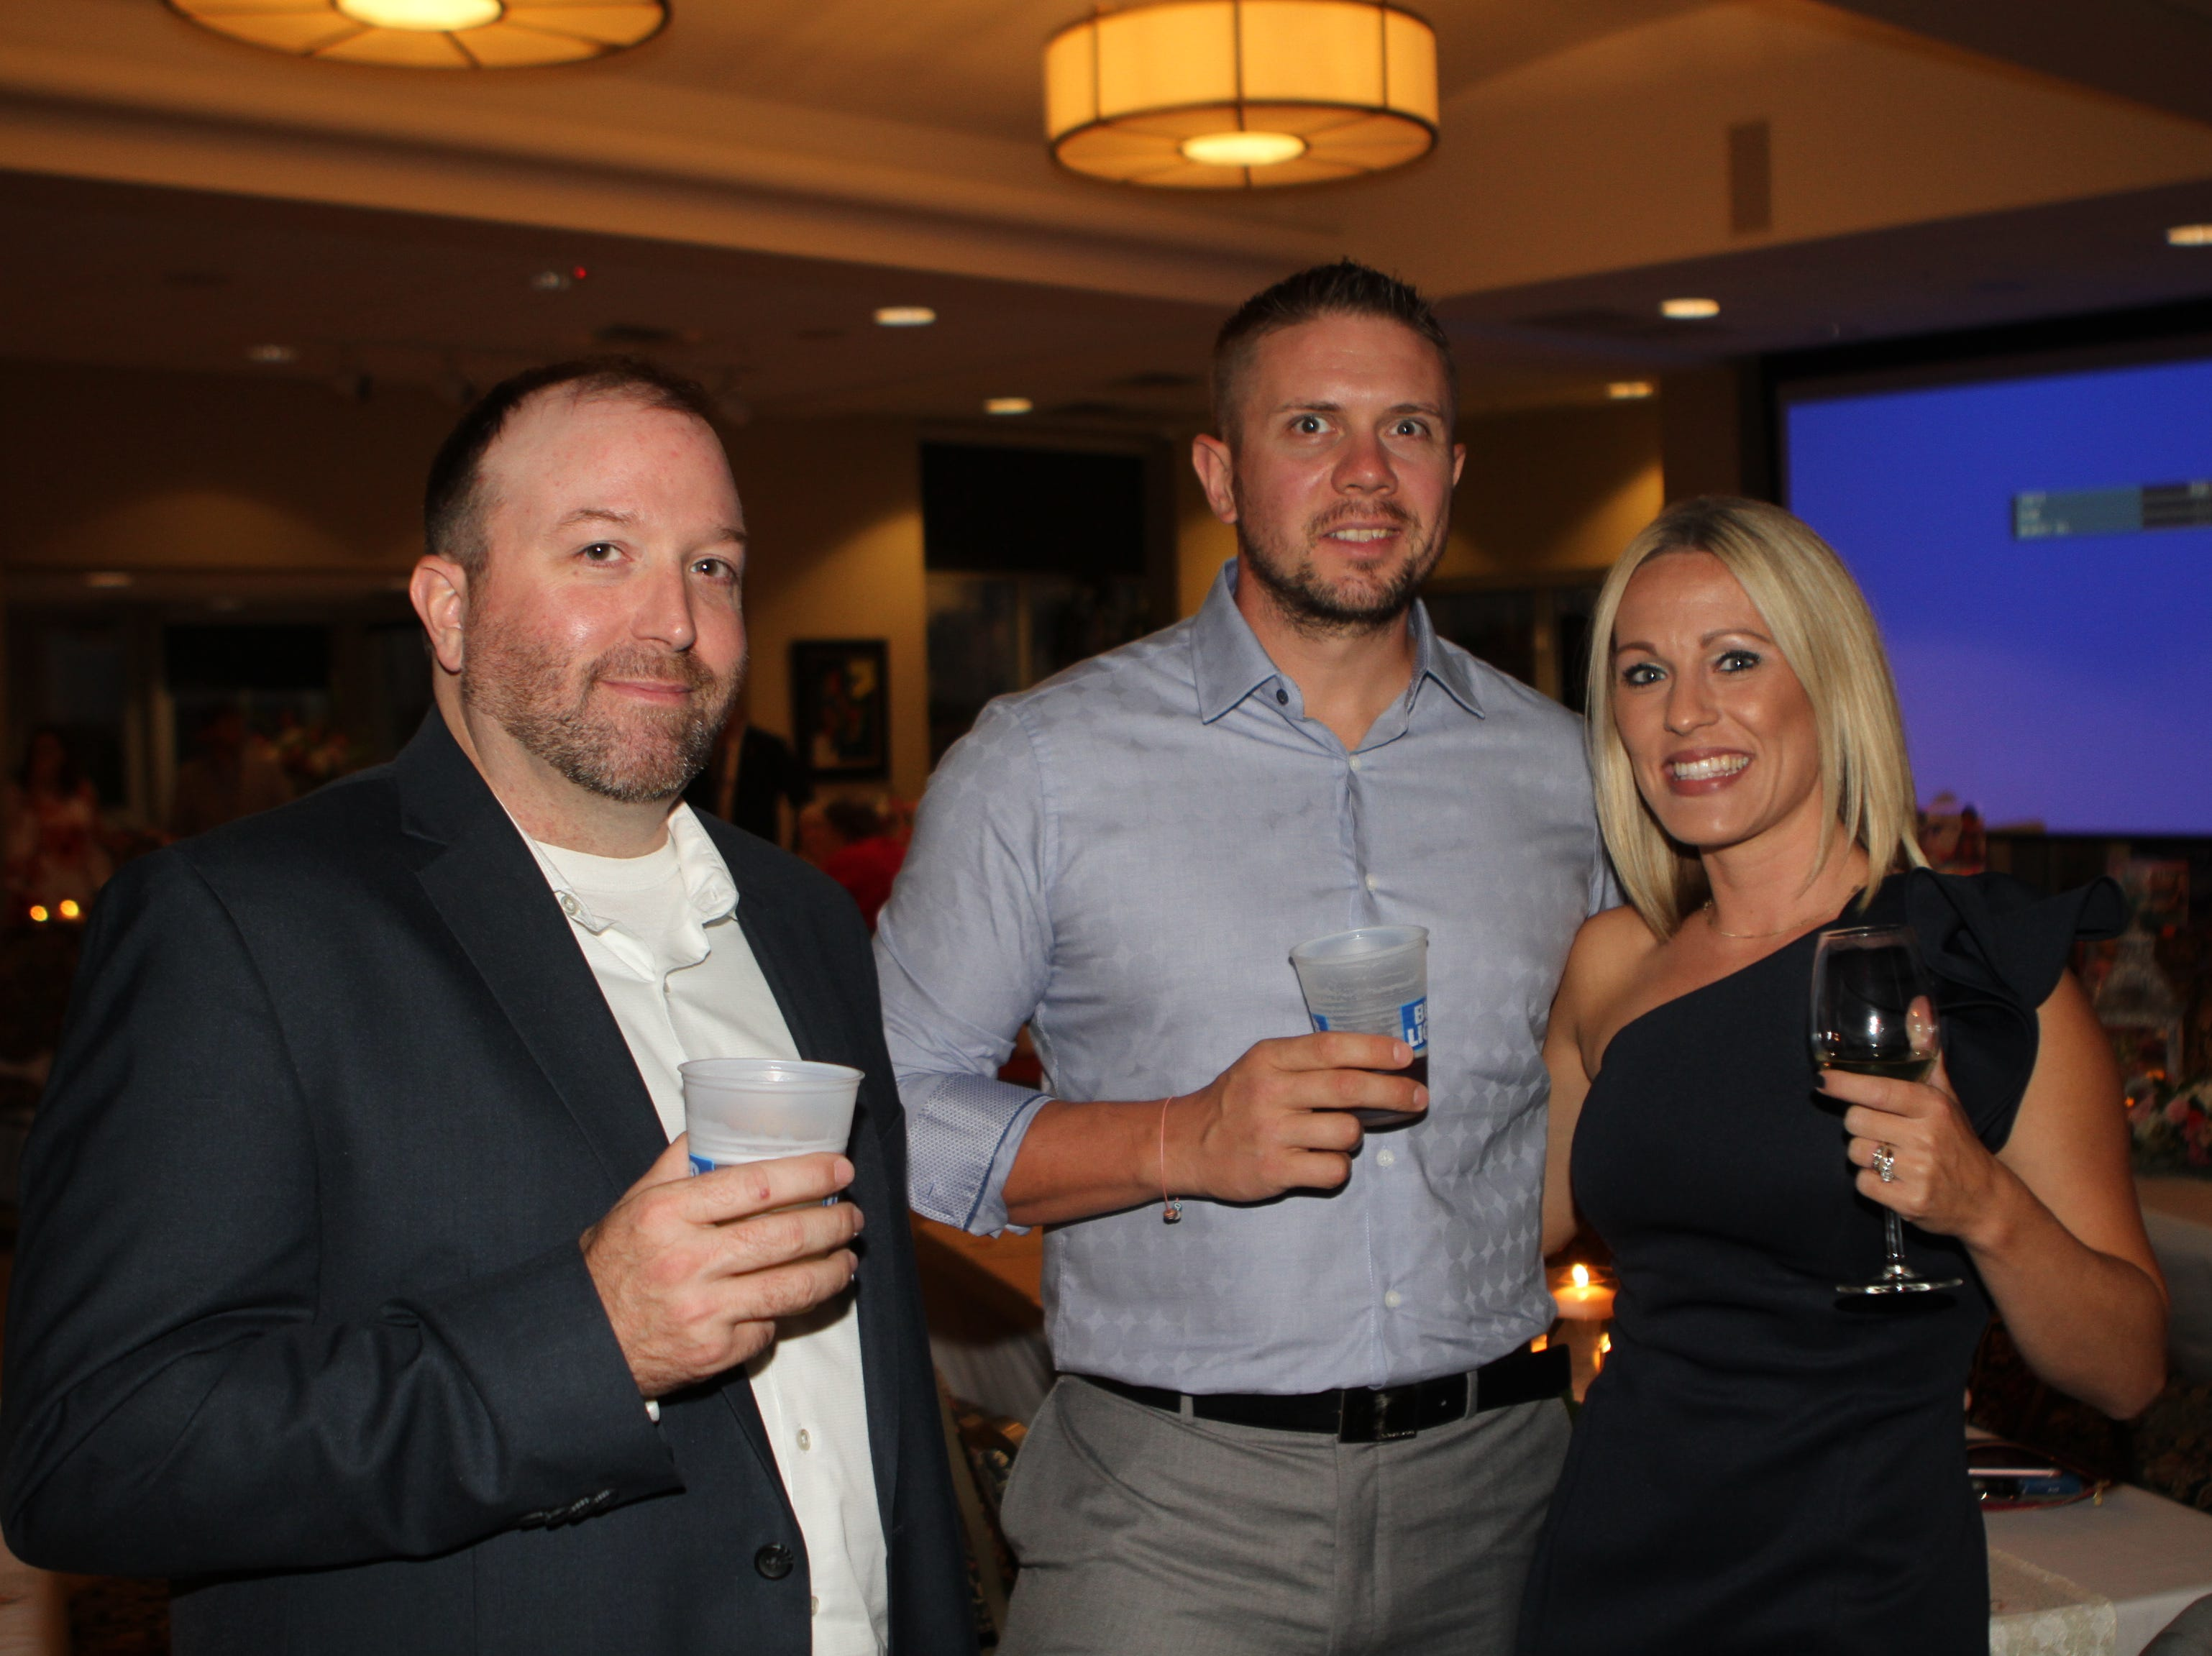 Brian Roberts, Ricky and Katie Sharp at the Dawn Stanfill Foundation 10th Annual Dancing Til Dawn to benefit Middle Tennessee children battling pediatric cancer on Saturday, Sept. 29, 2018.